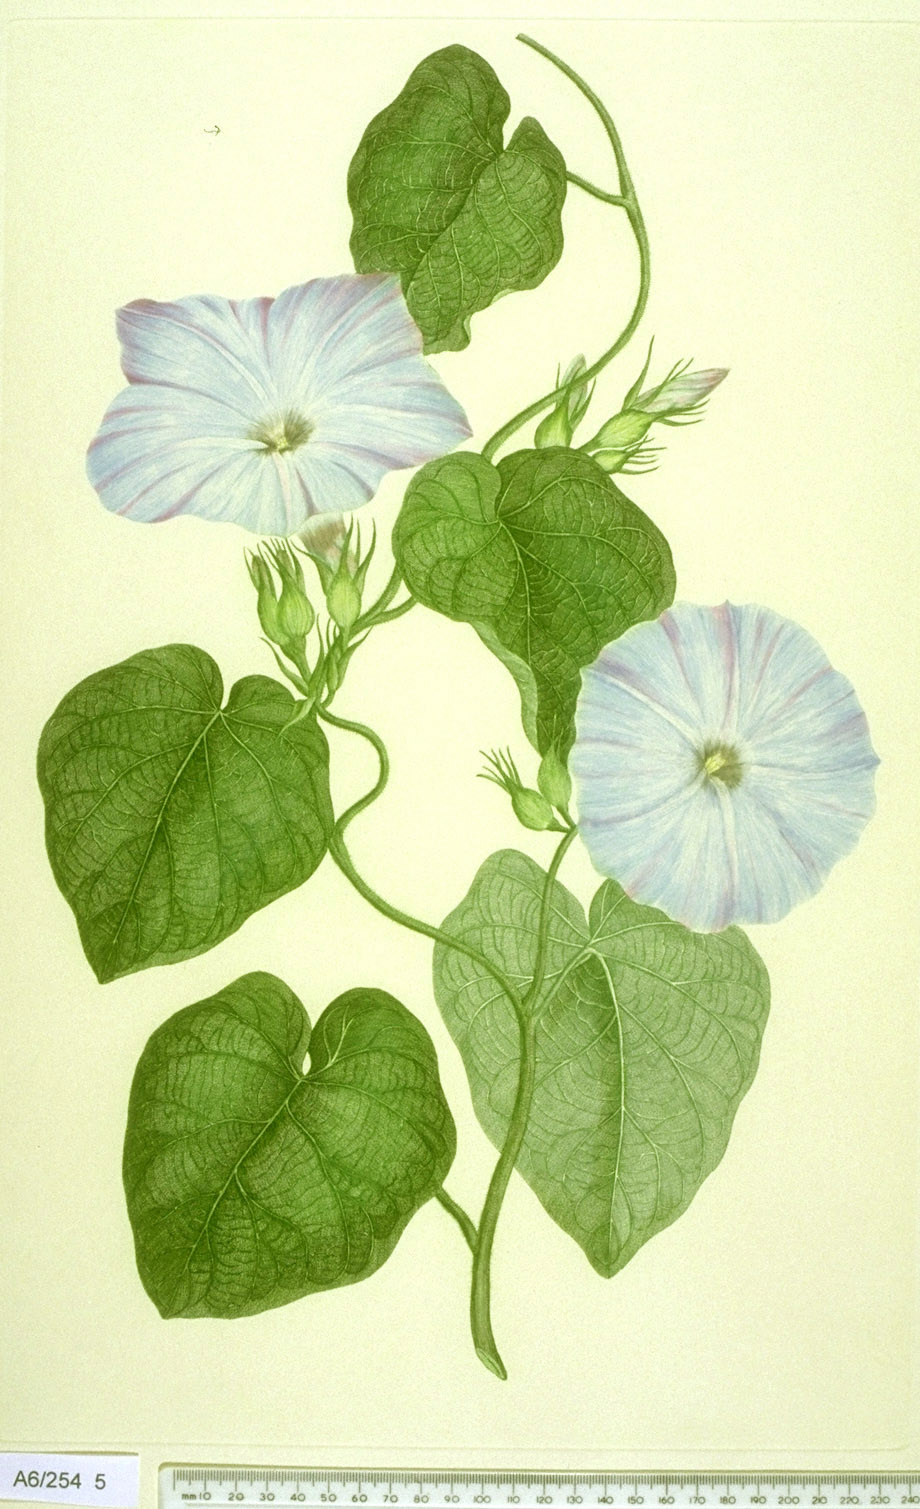 Ipomoea Indica - approx. actual size - this image digitally watermarked and copyright NHM